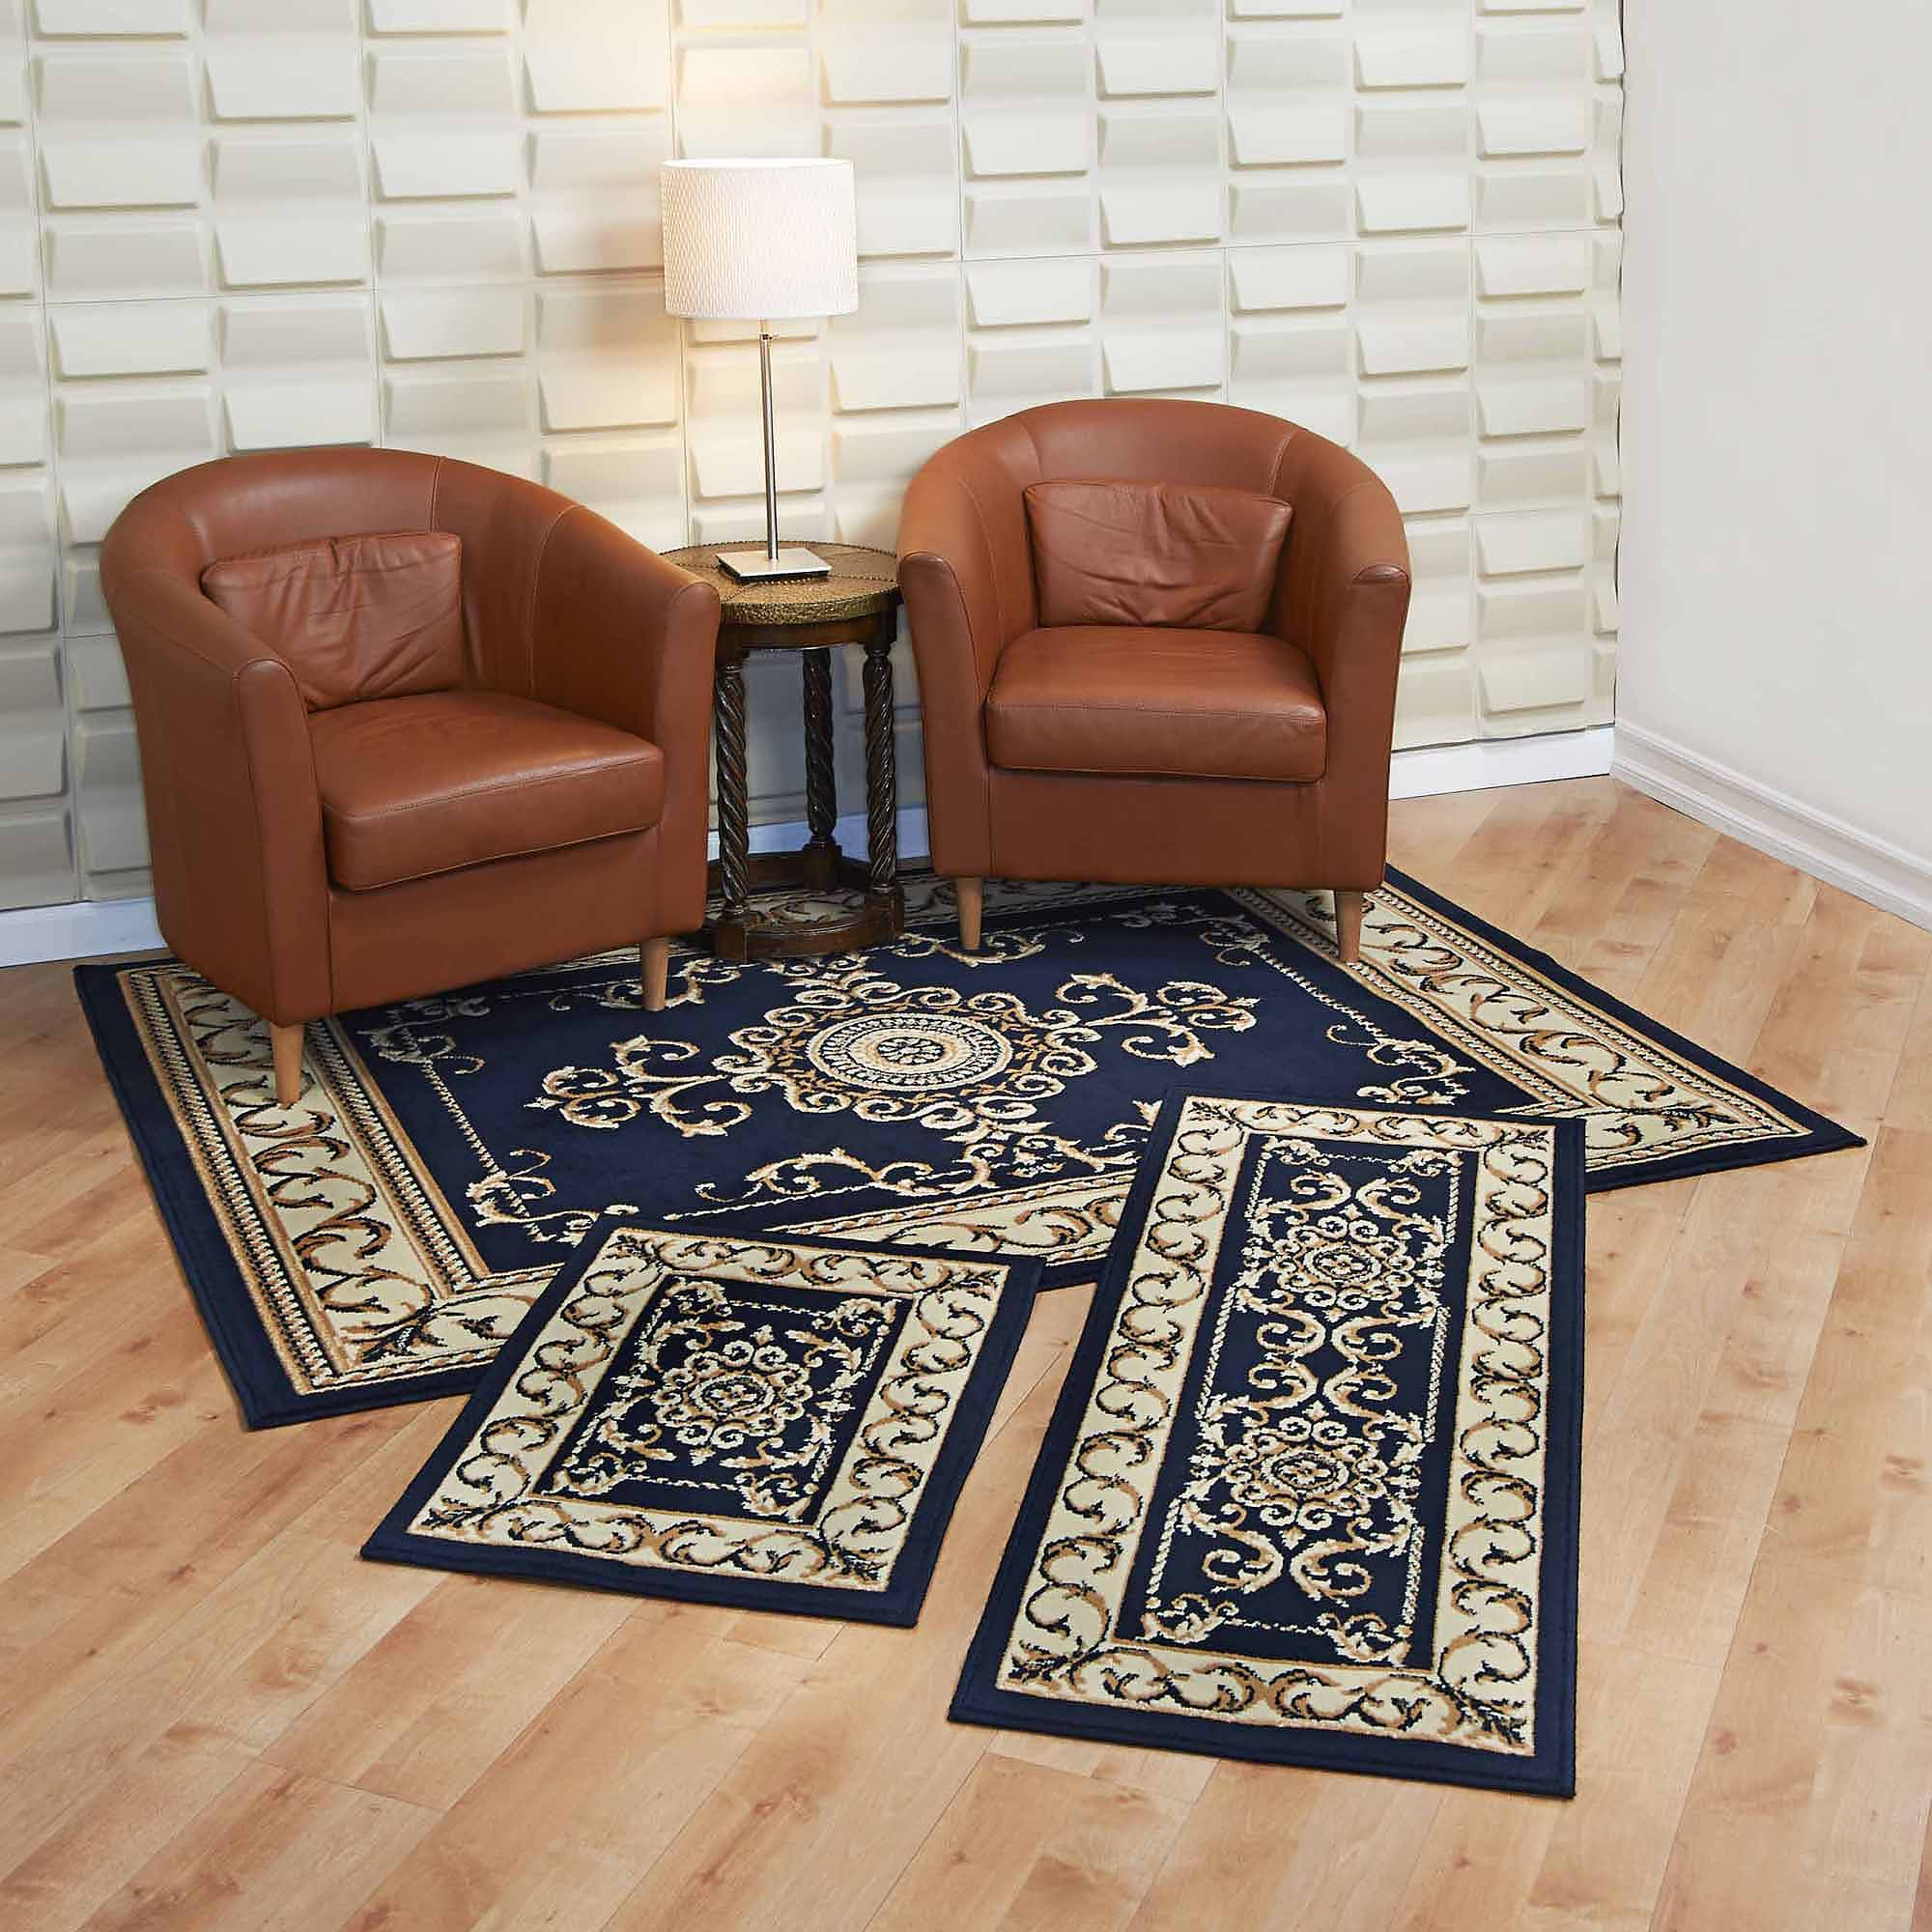 3 Piece Area Rug Sets Rug Designs